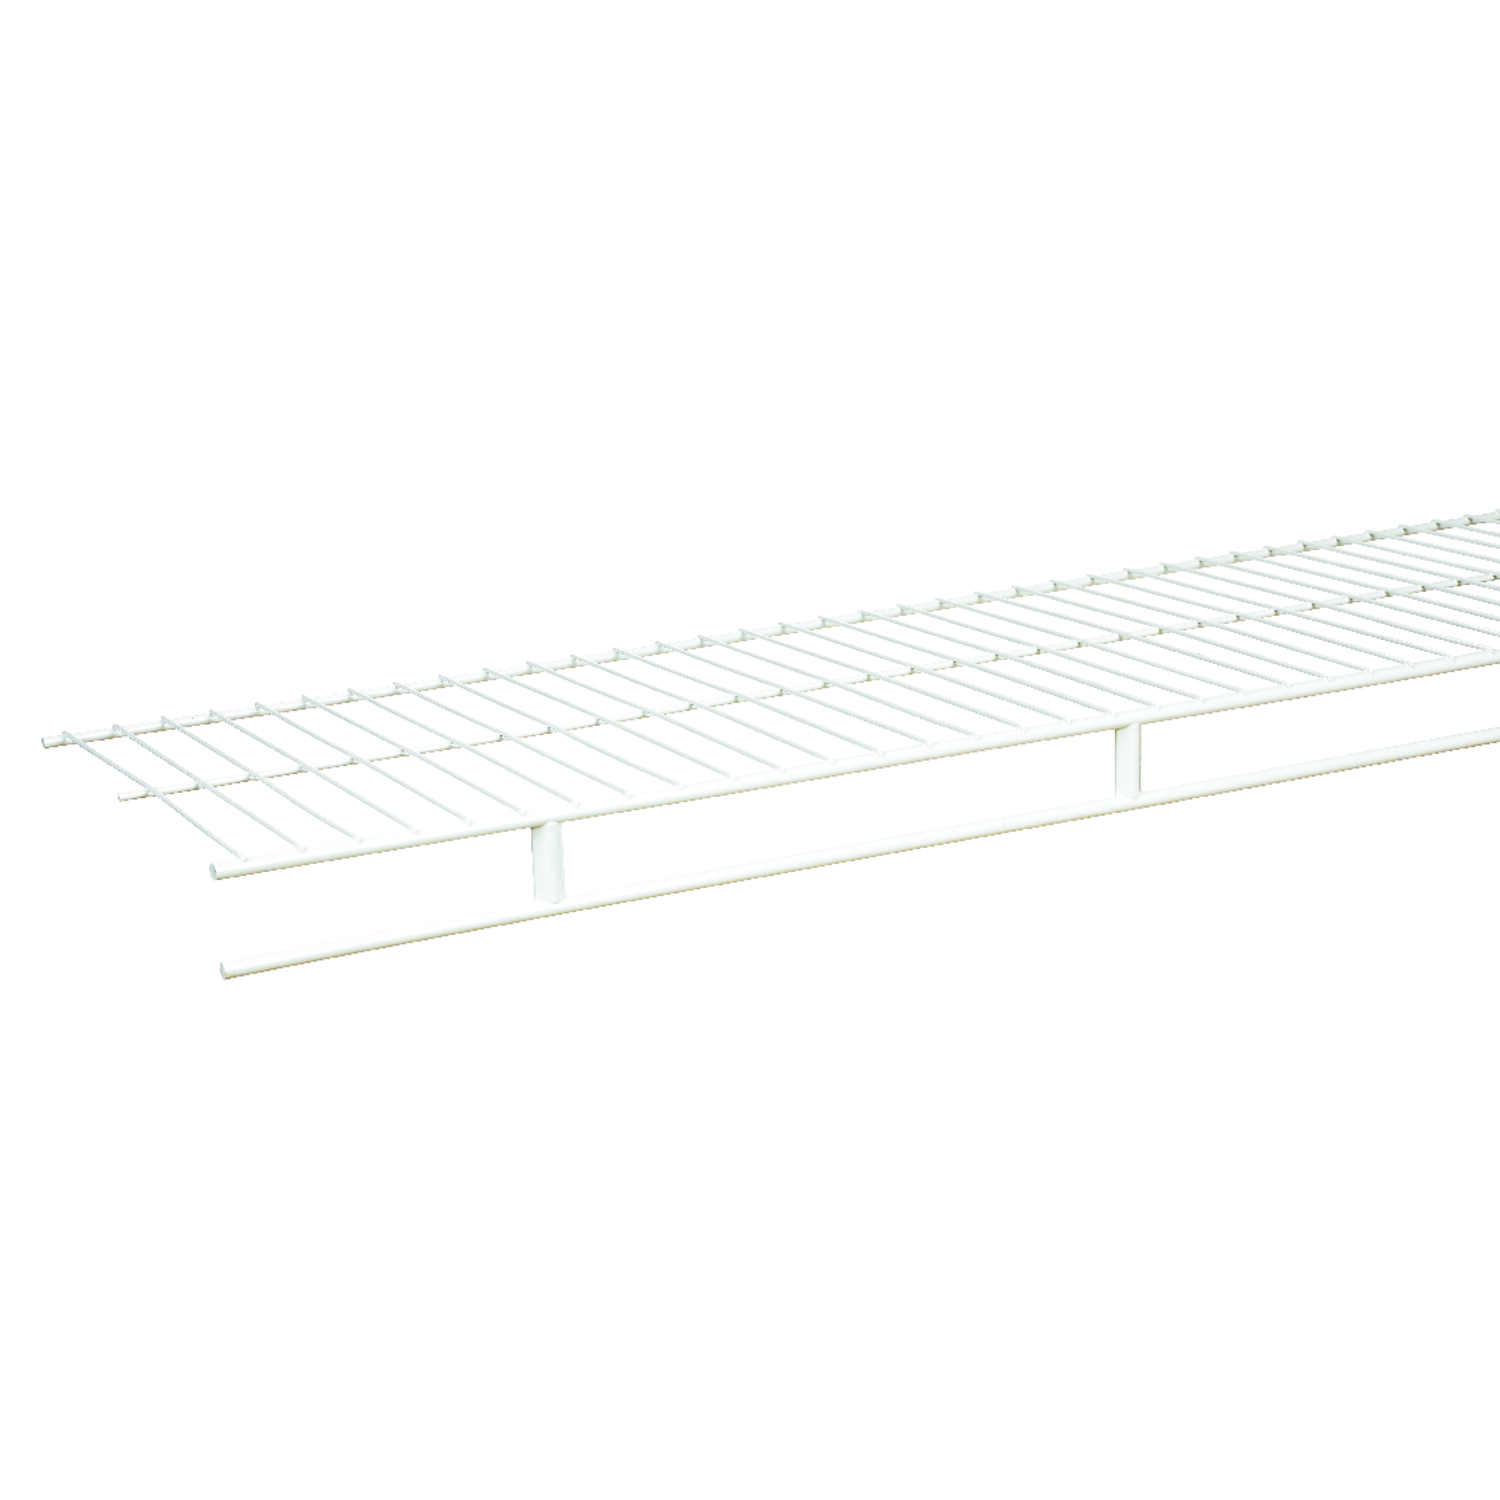 Rubbermaid  96 in. H x 12 in. W x 1.9 in. L Steel  Wardrobe Shelf  1 each